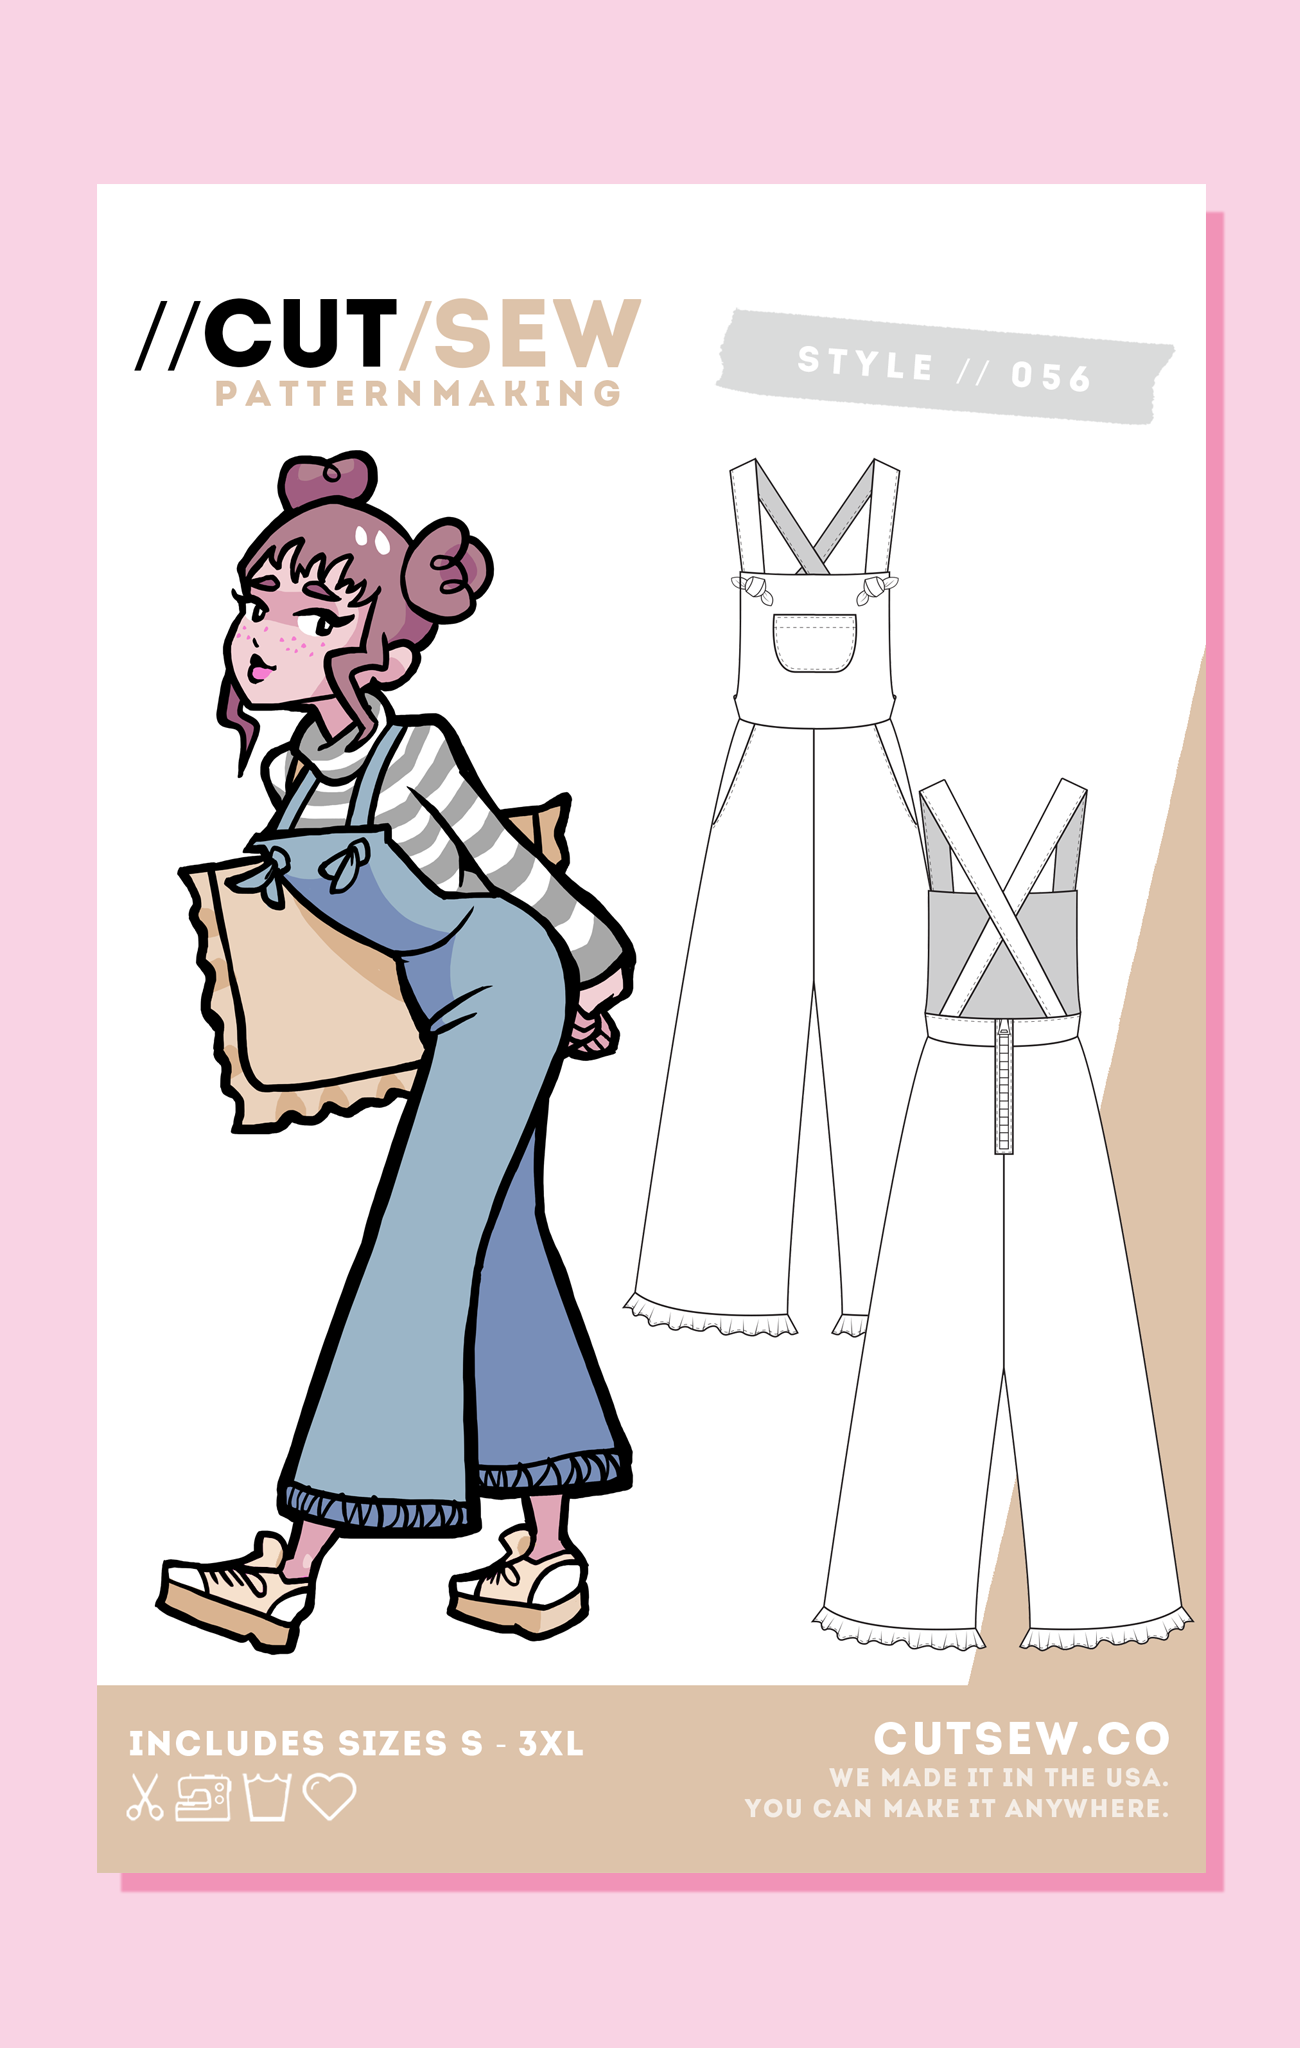 CUT/SEW Overall Playsuit Sewing Pattern